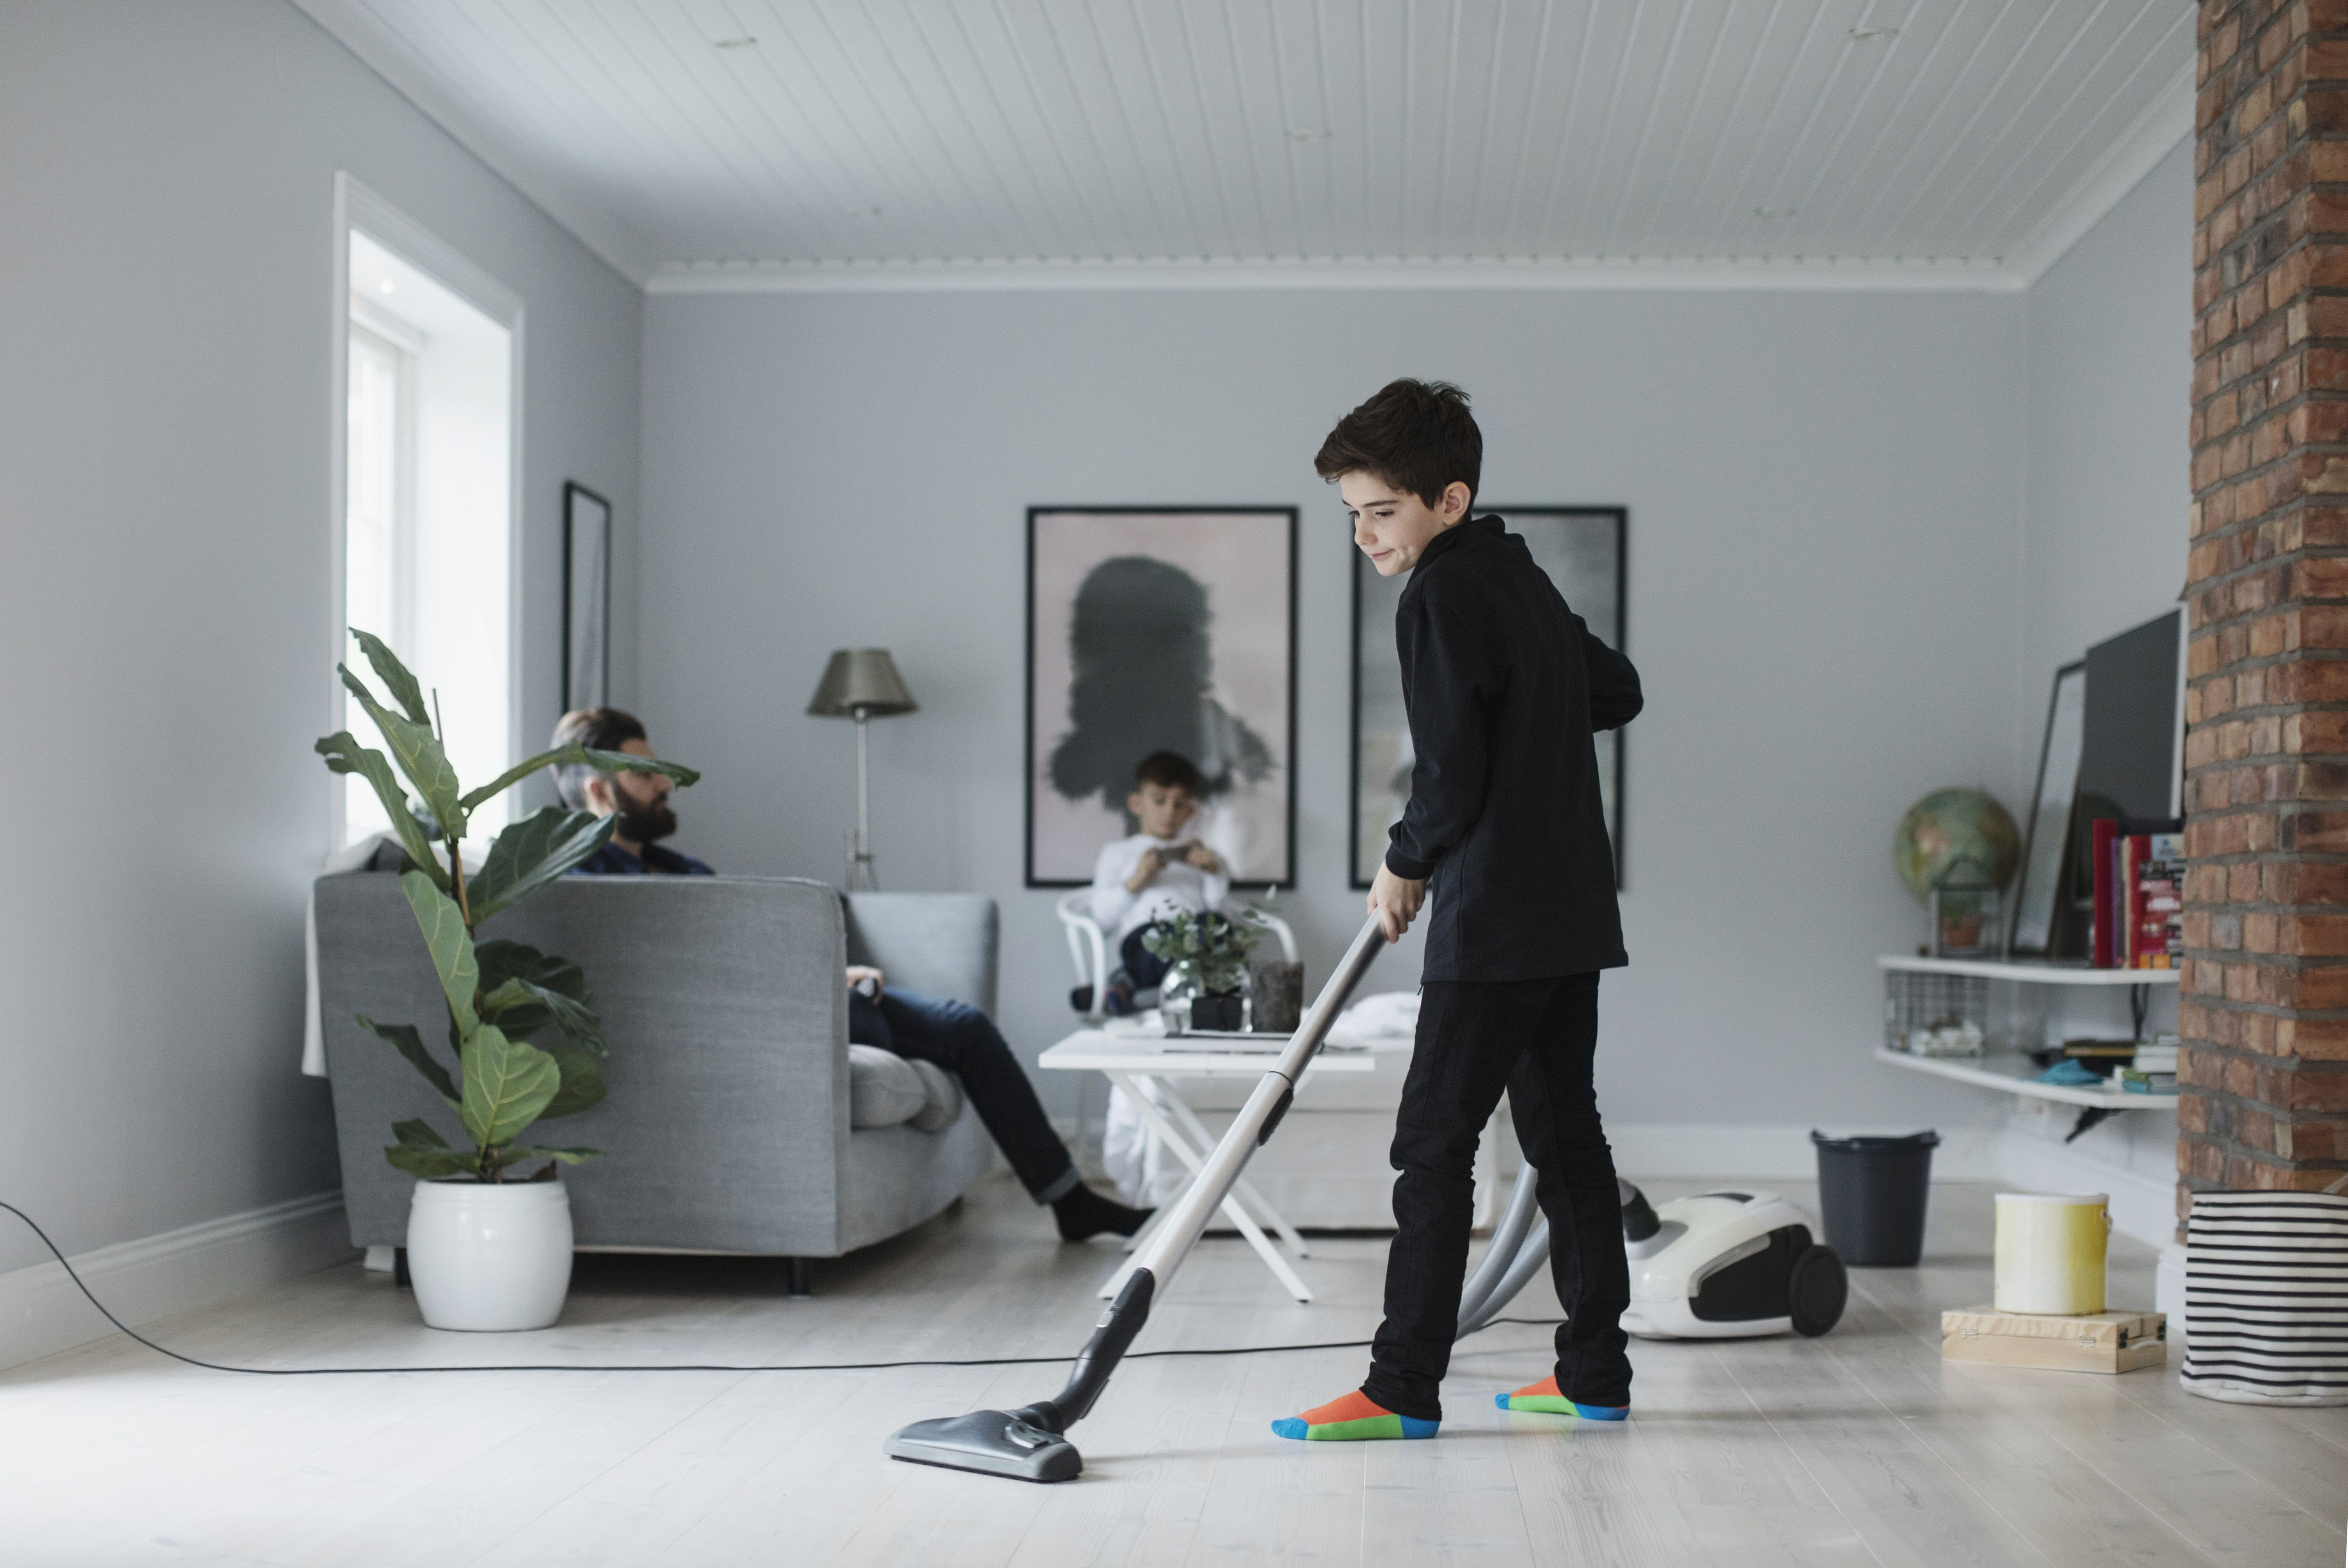 Boy vacuuming floor in living room at home and earning money for the chore.